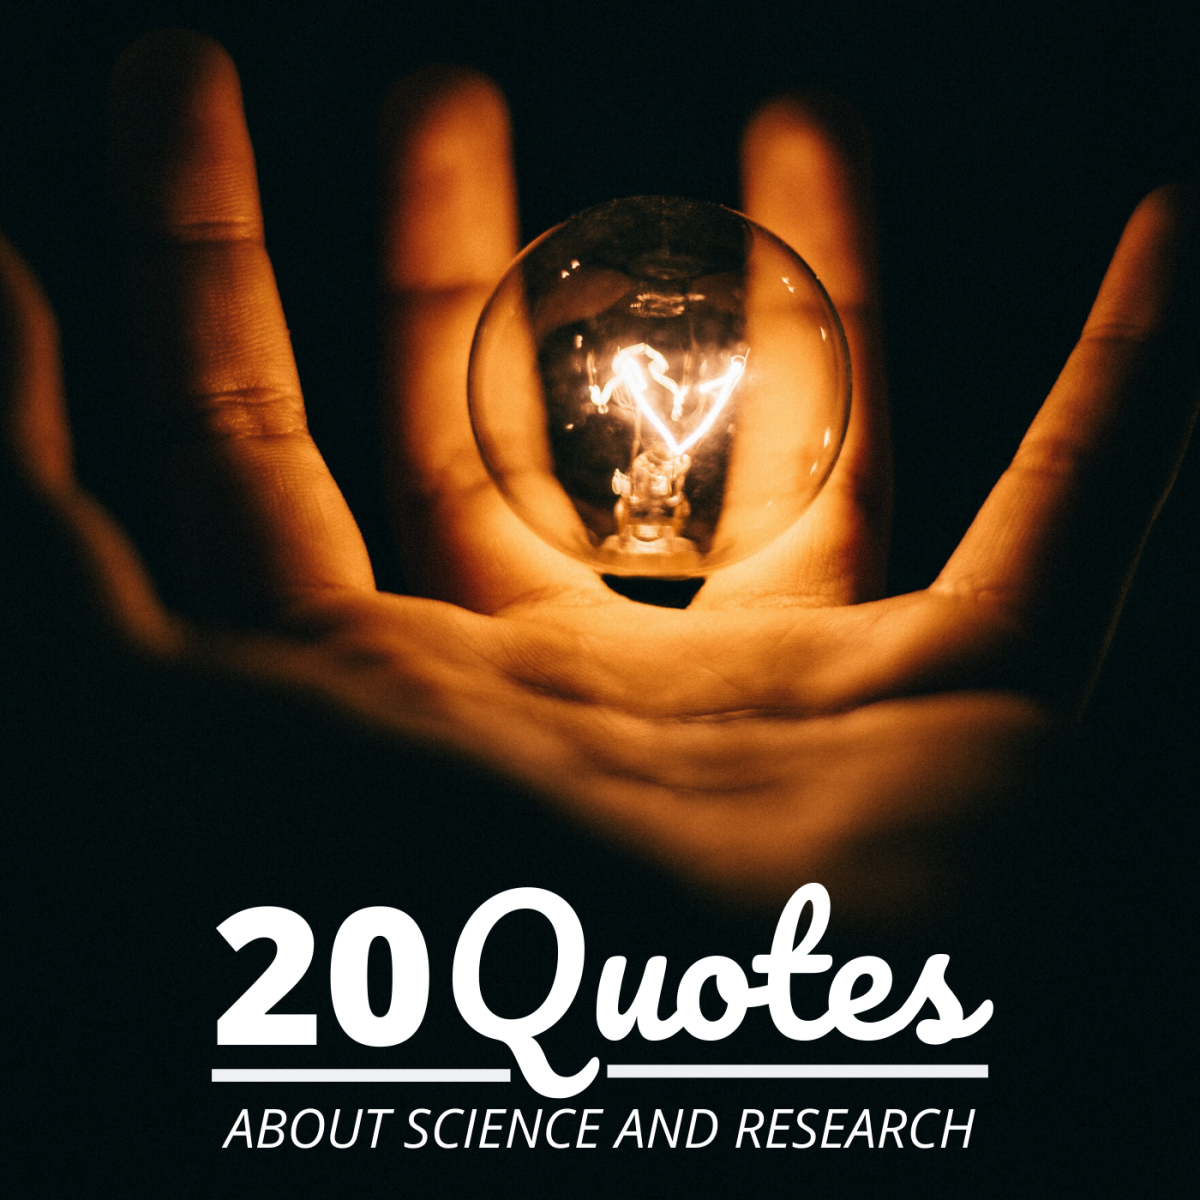 Enjoy these 20 quotes about science and why it matters.